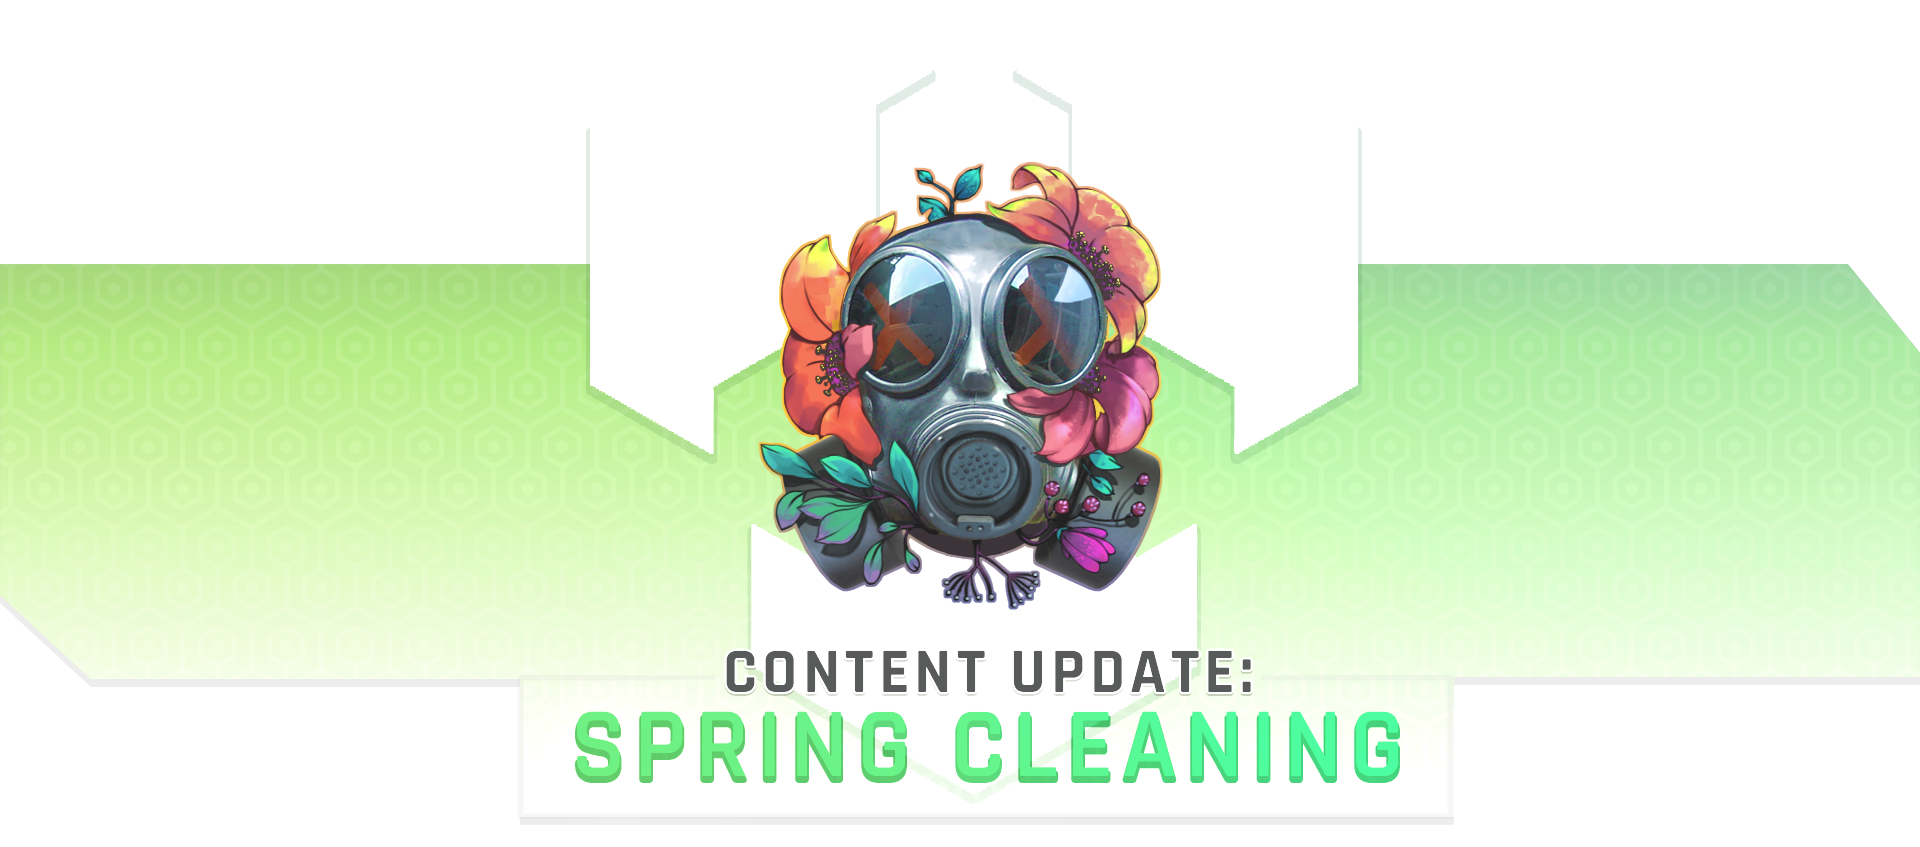 SpringCleaningBanner_Large.png